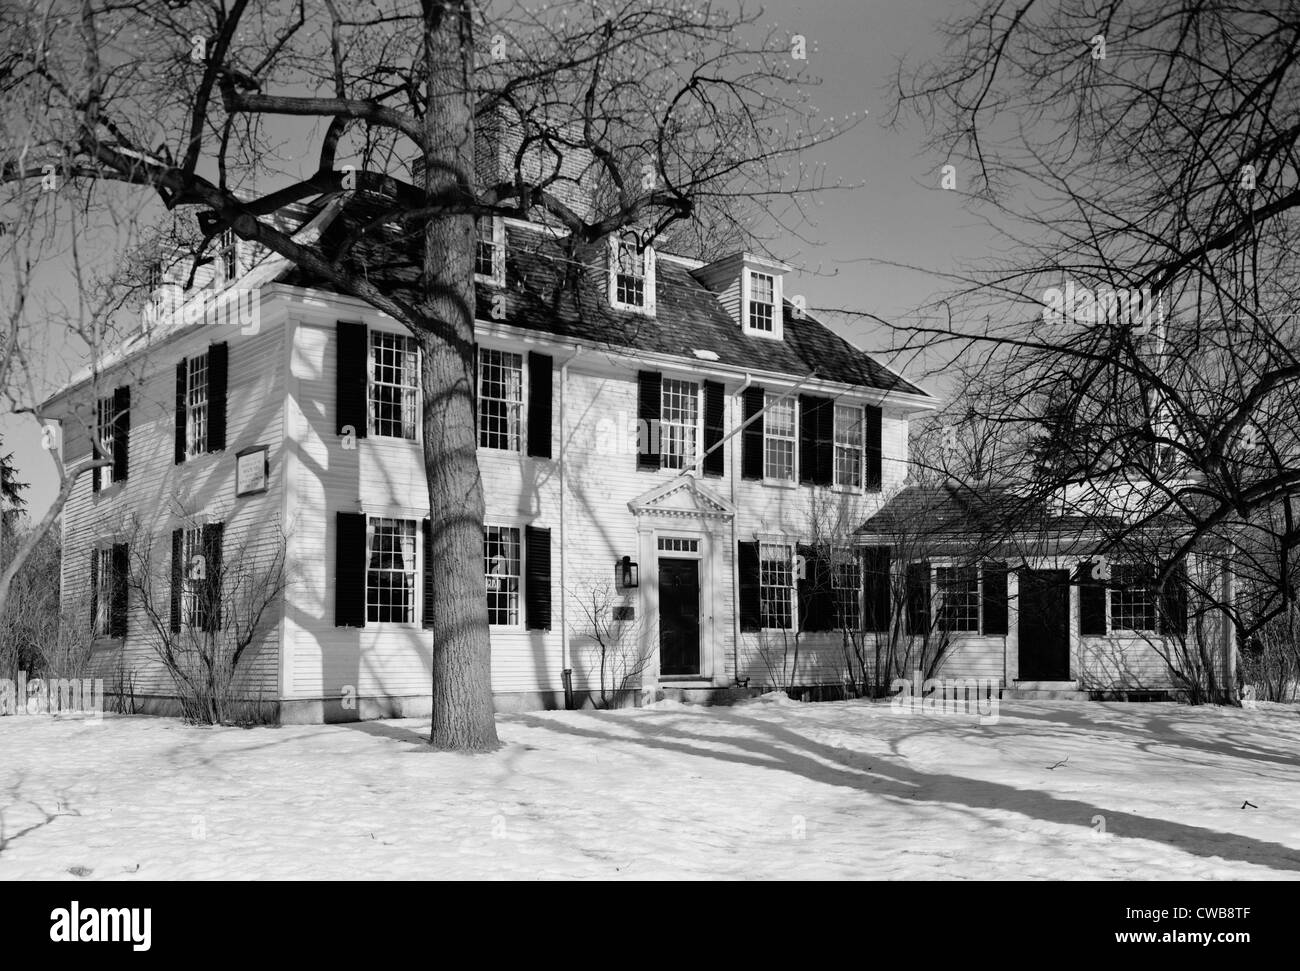 The American Revolution. Buckman Tavern, headquarters of the Colonial Militia Lexington, Massachusetts. - Stock Image